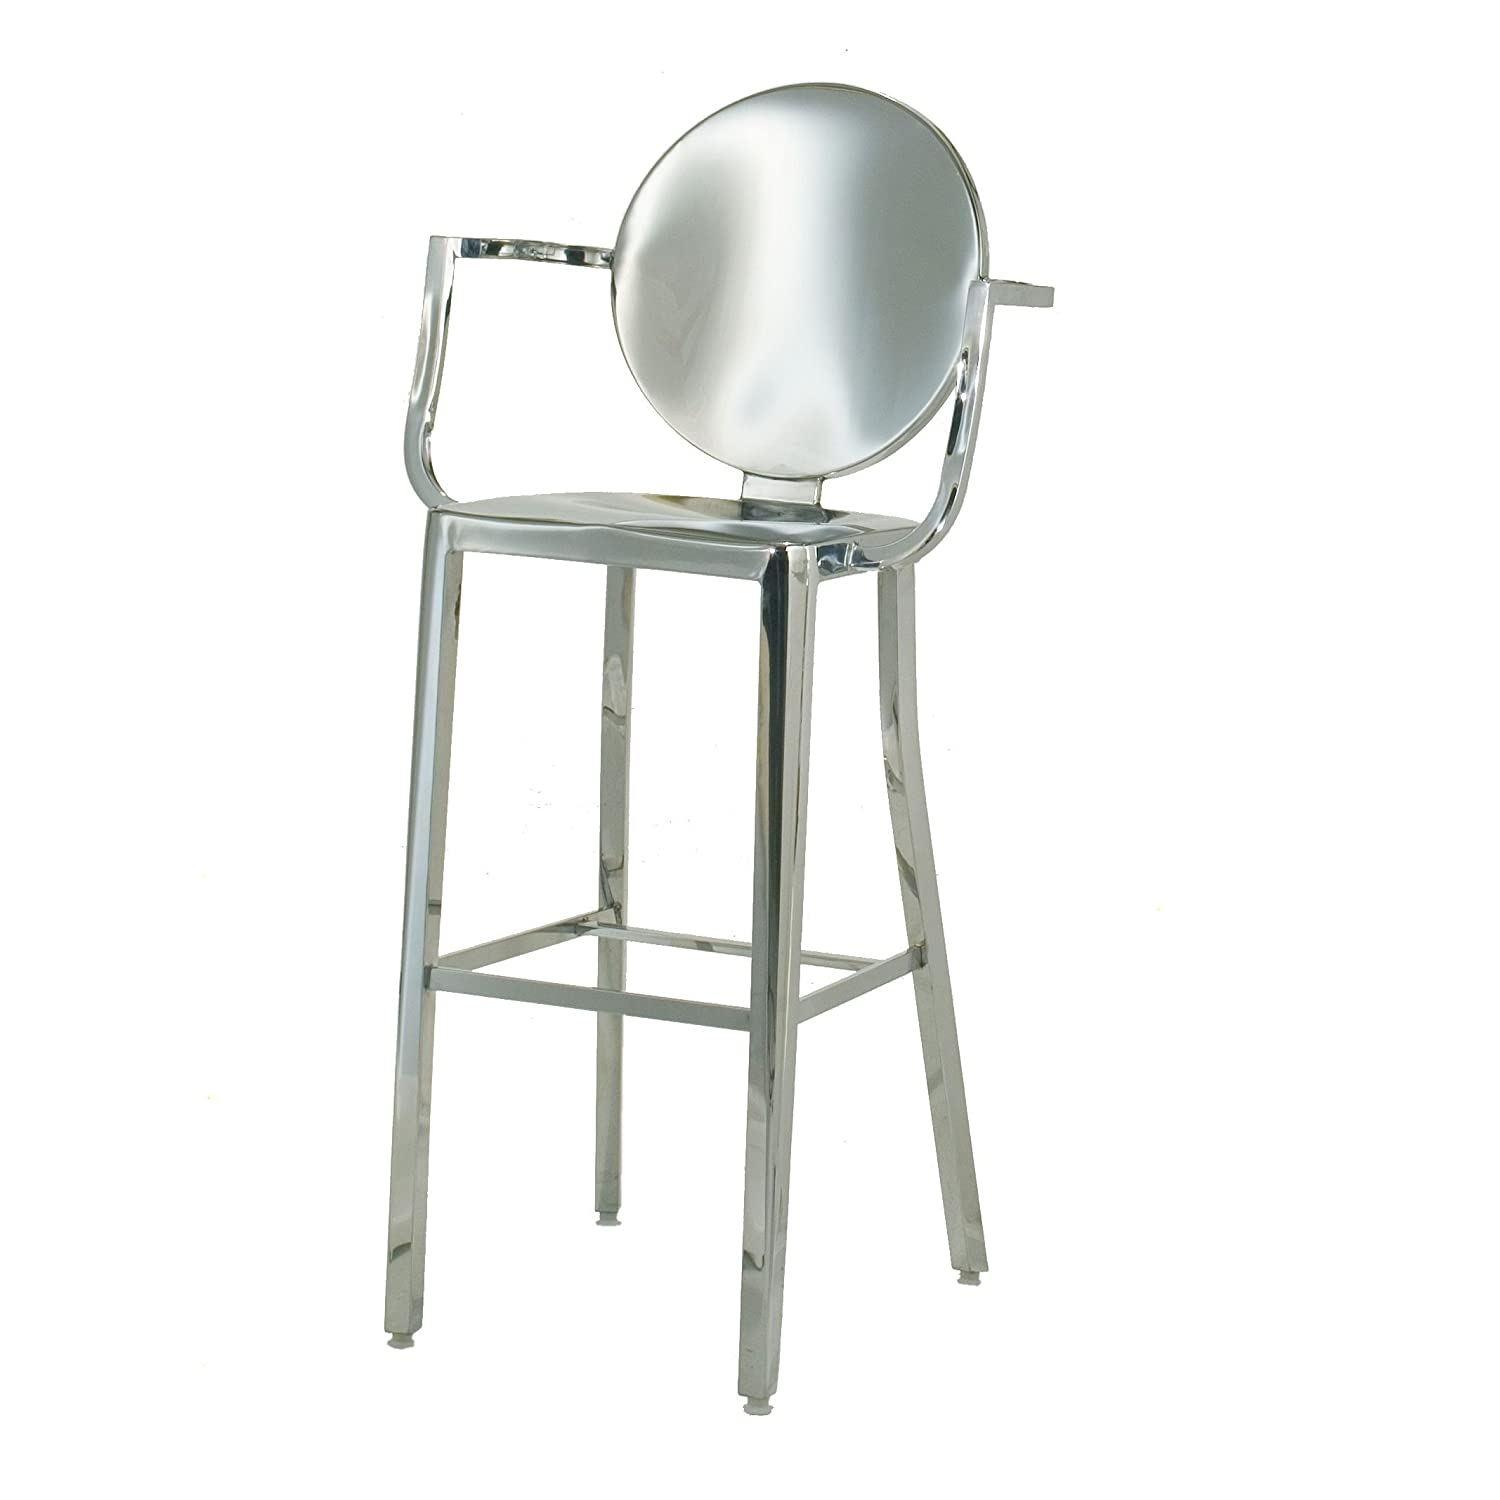 Stainless Bar Stools Stainless Steel Bar Stools Webnuggetz